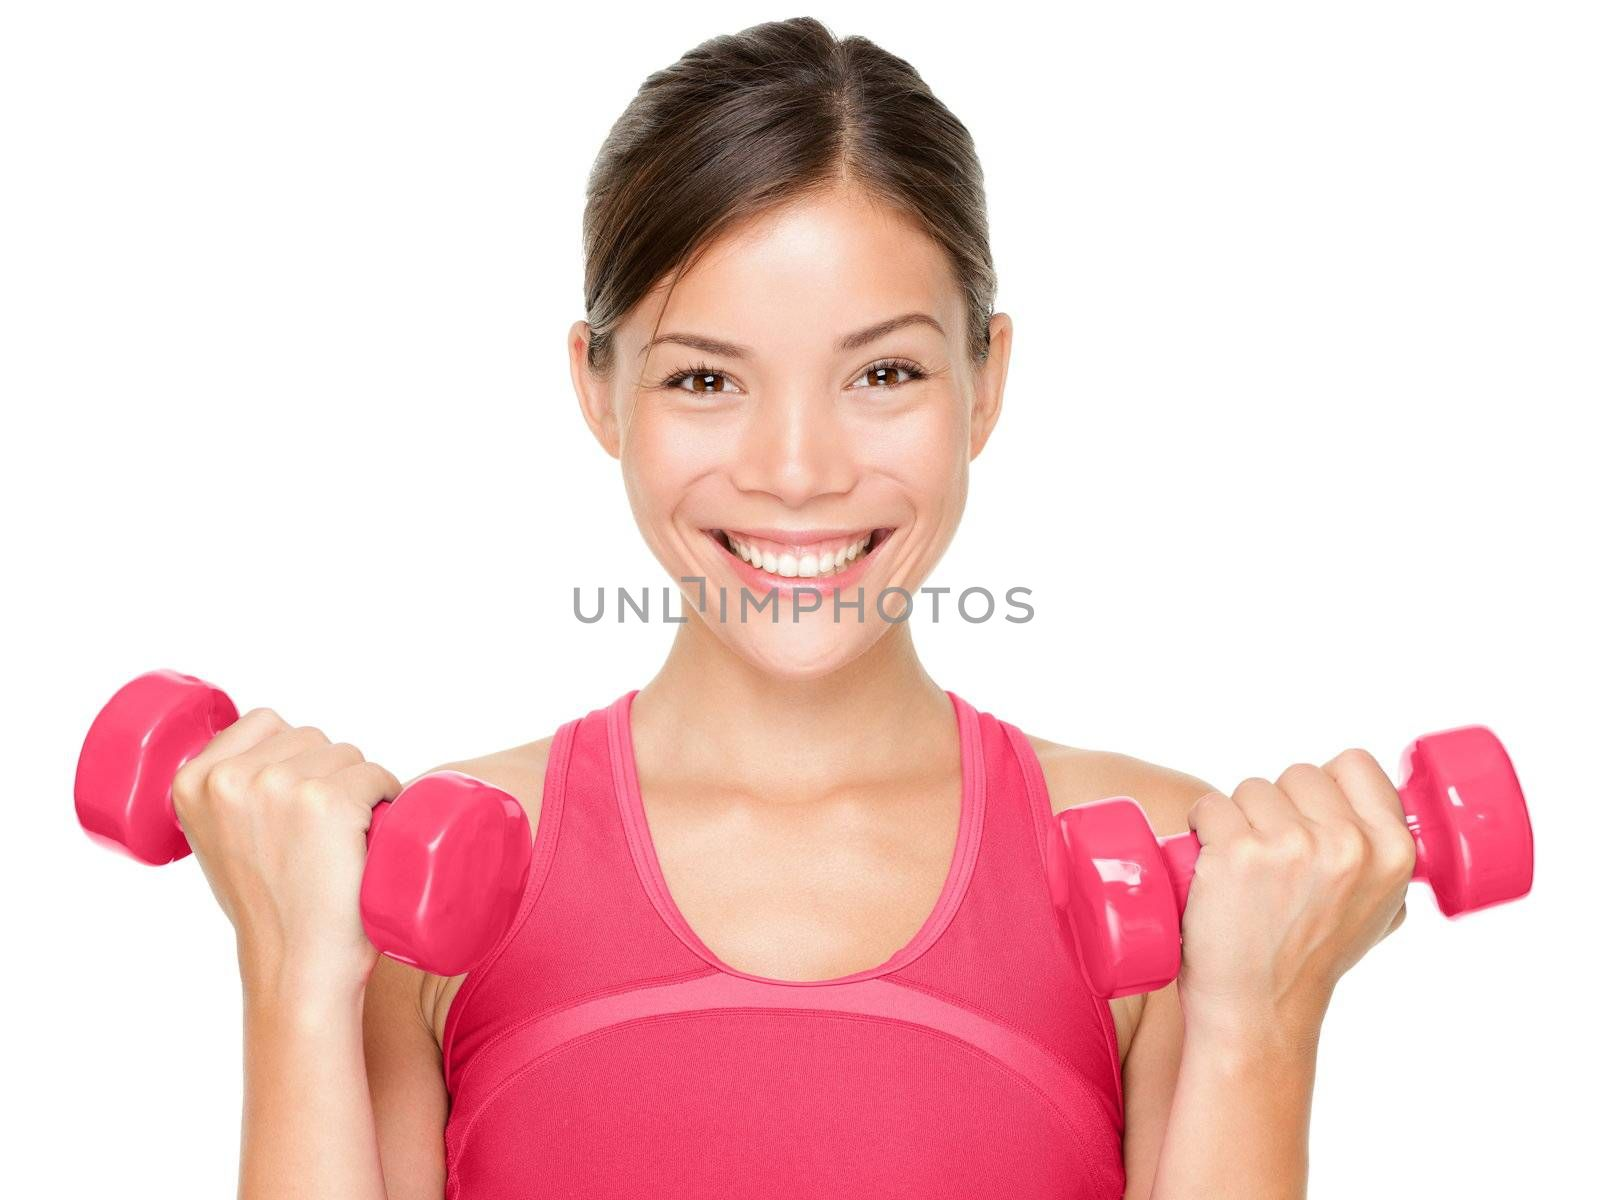 Fitness woman happy holding dumbbell weights smiling isolated on white background. Beautiful multicultural mixed race Asian Caucasian female sport fitness model.